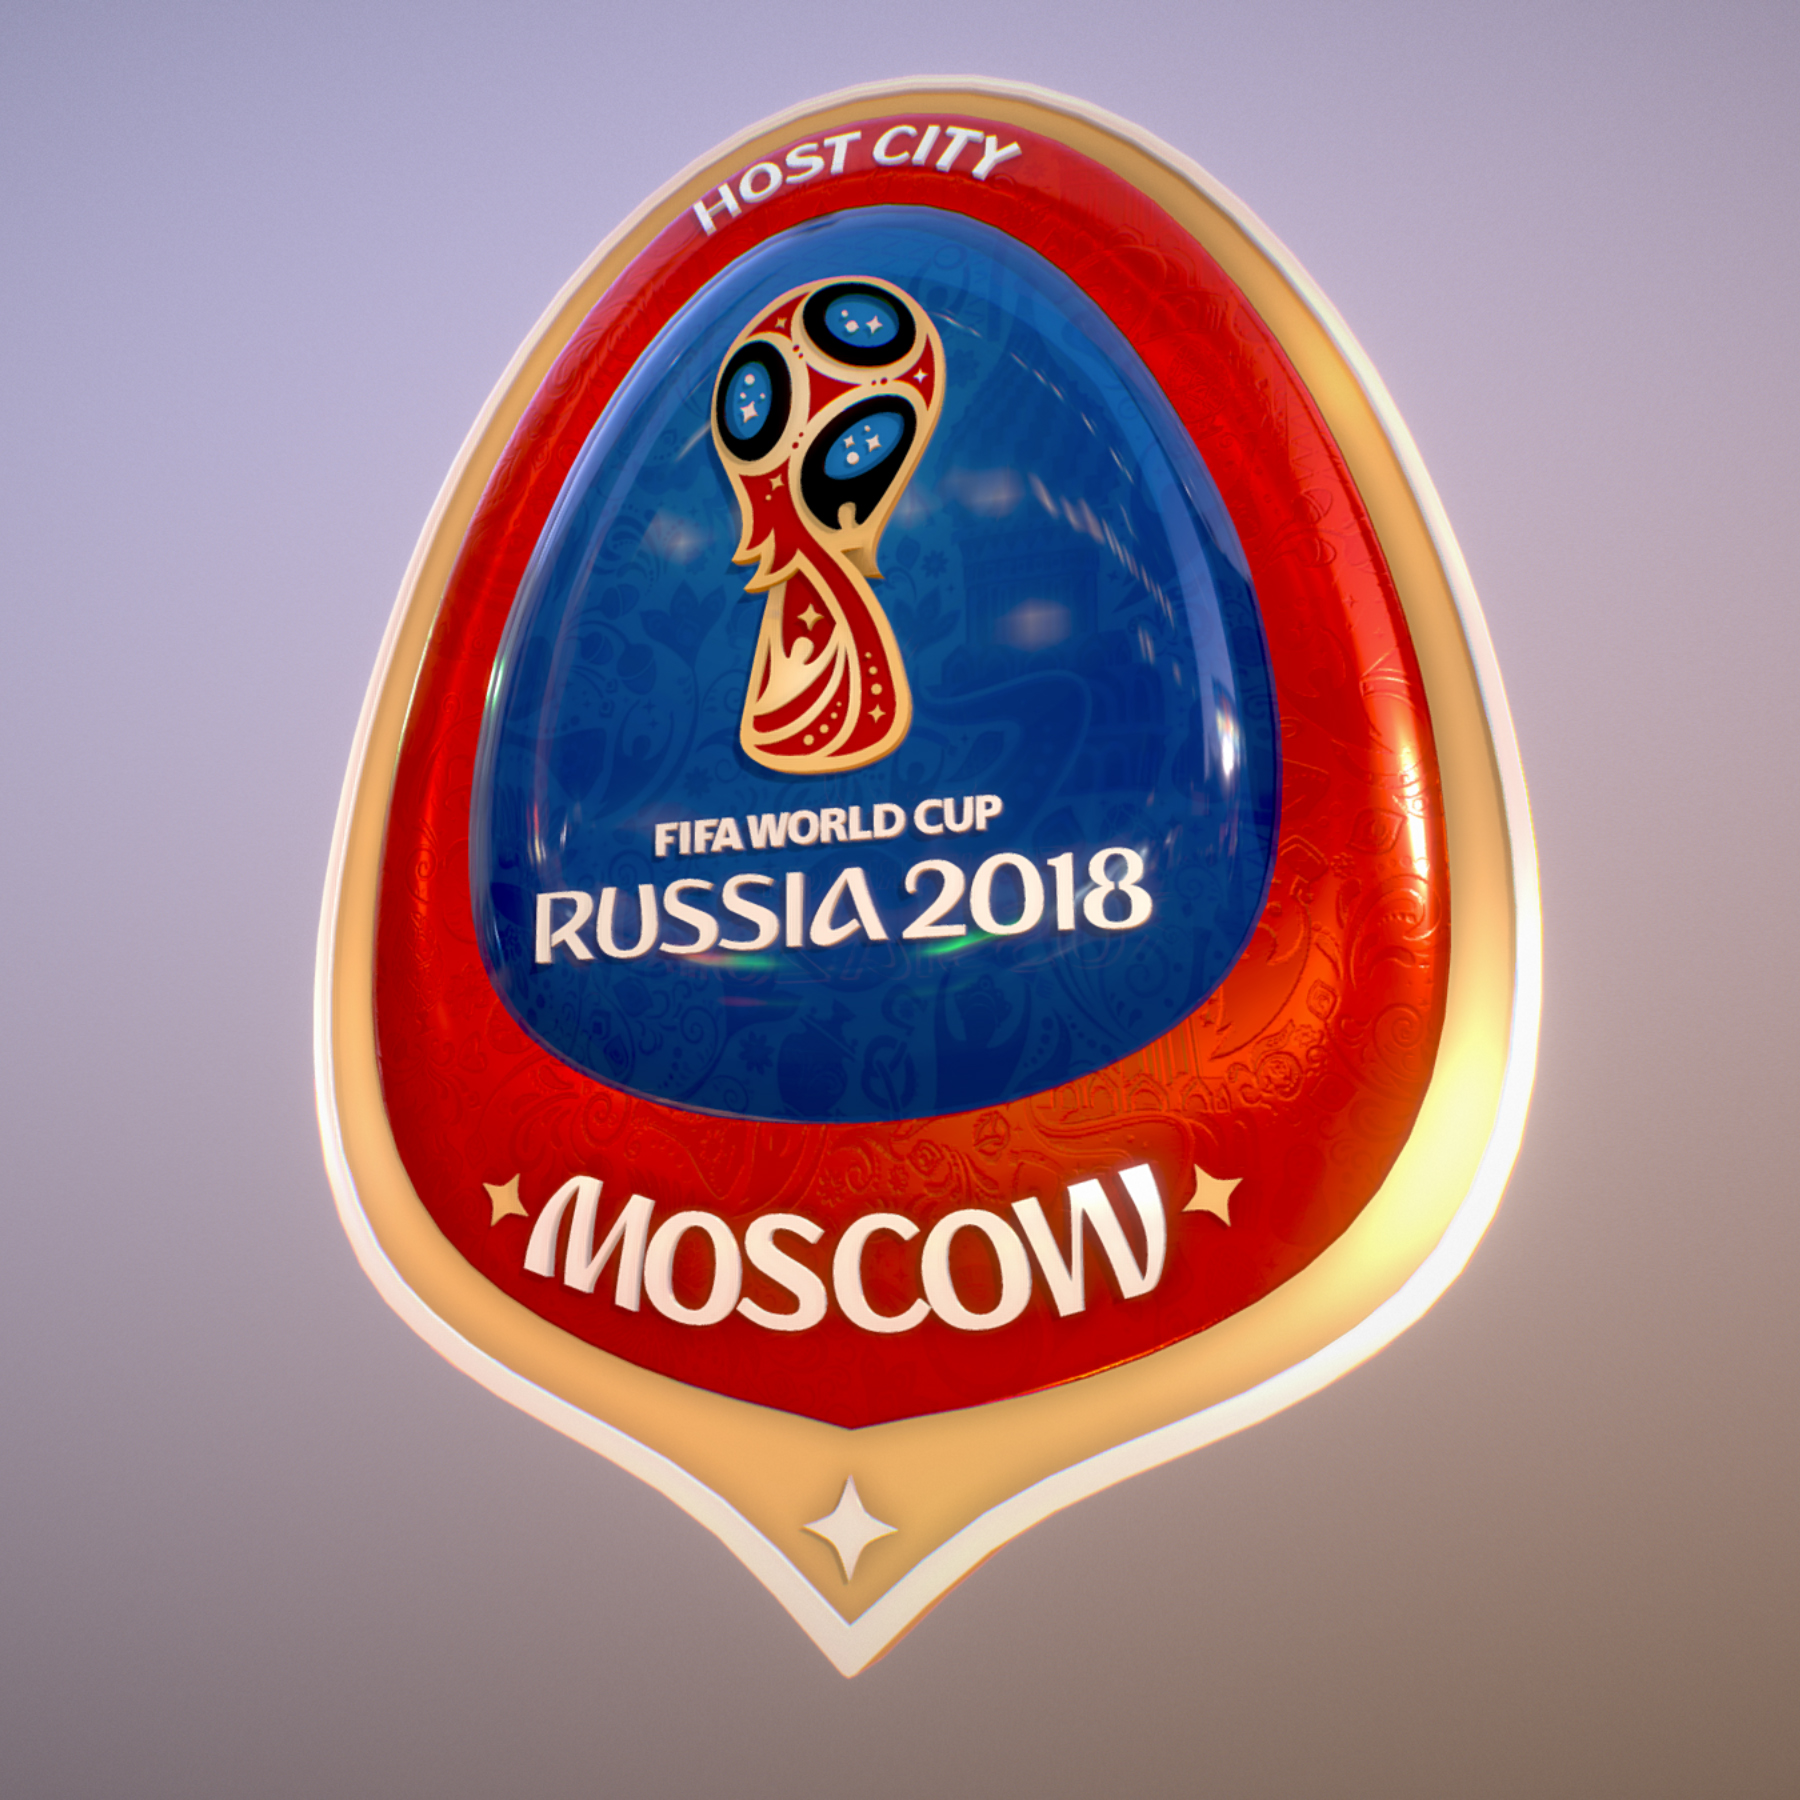 moscow host city world cup russia 2018 symbol 3d model max  fbx jpeg jpg ma mb obj 271651